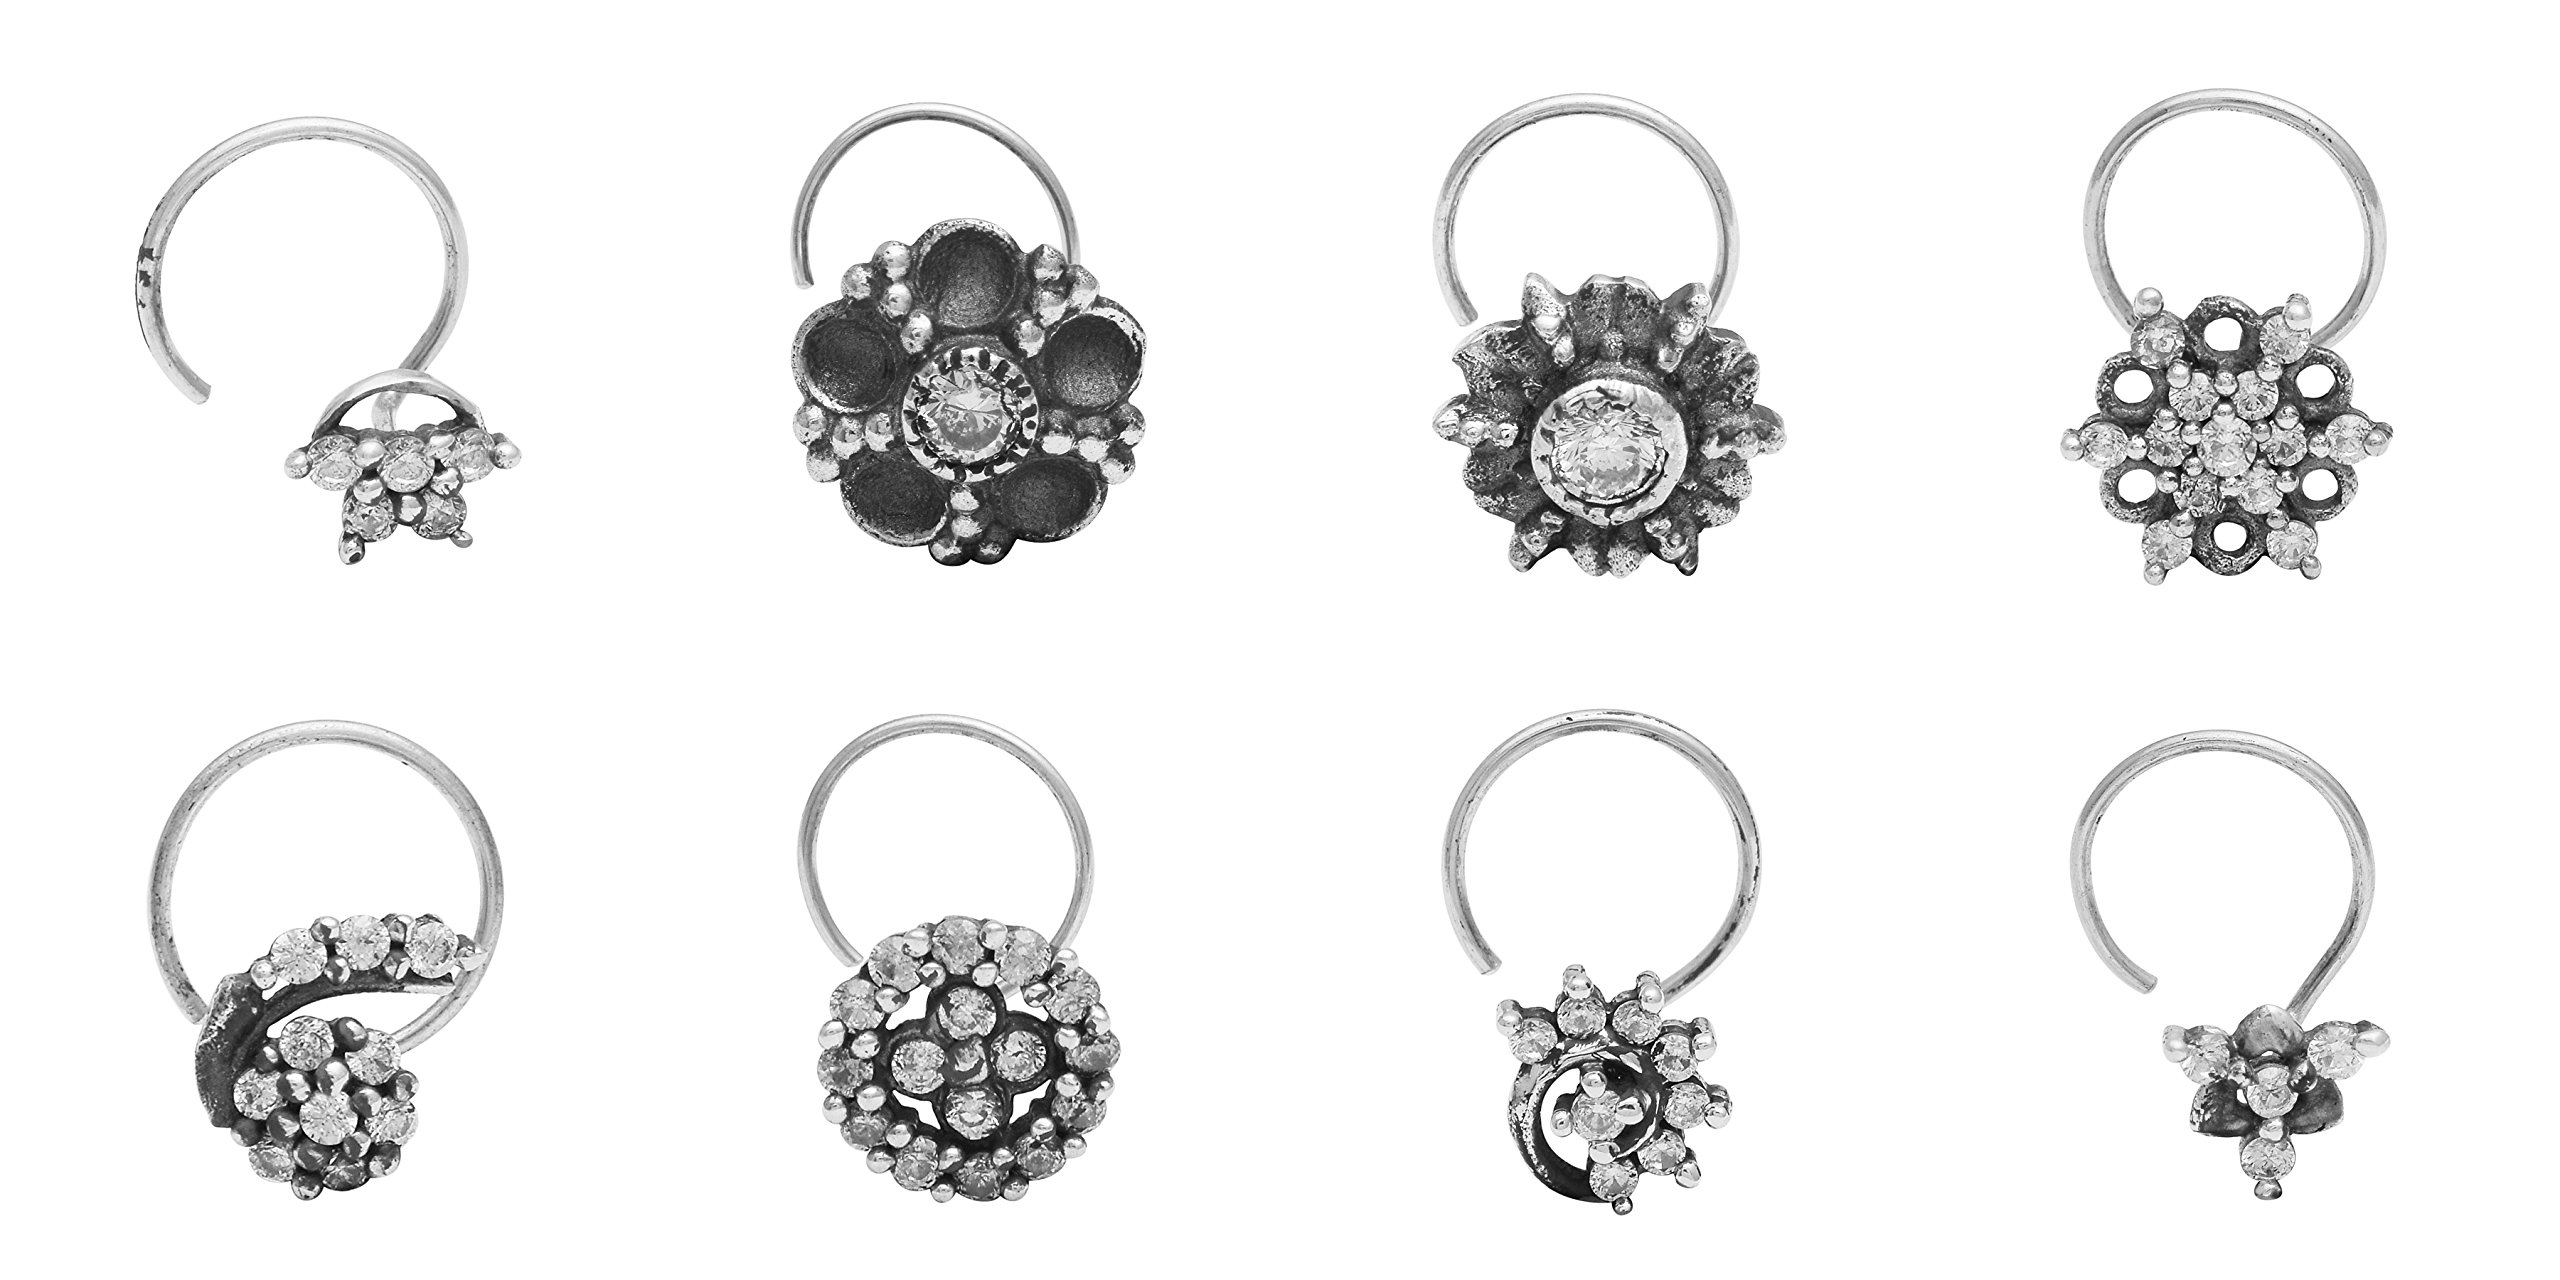 Shine Jewel Set of 8 Oxidized 925 Sterling Silver Nose Pin for Women/Girls Cubic Zirconia CZ